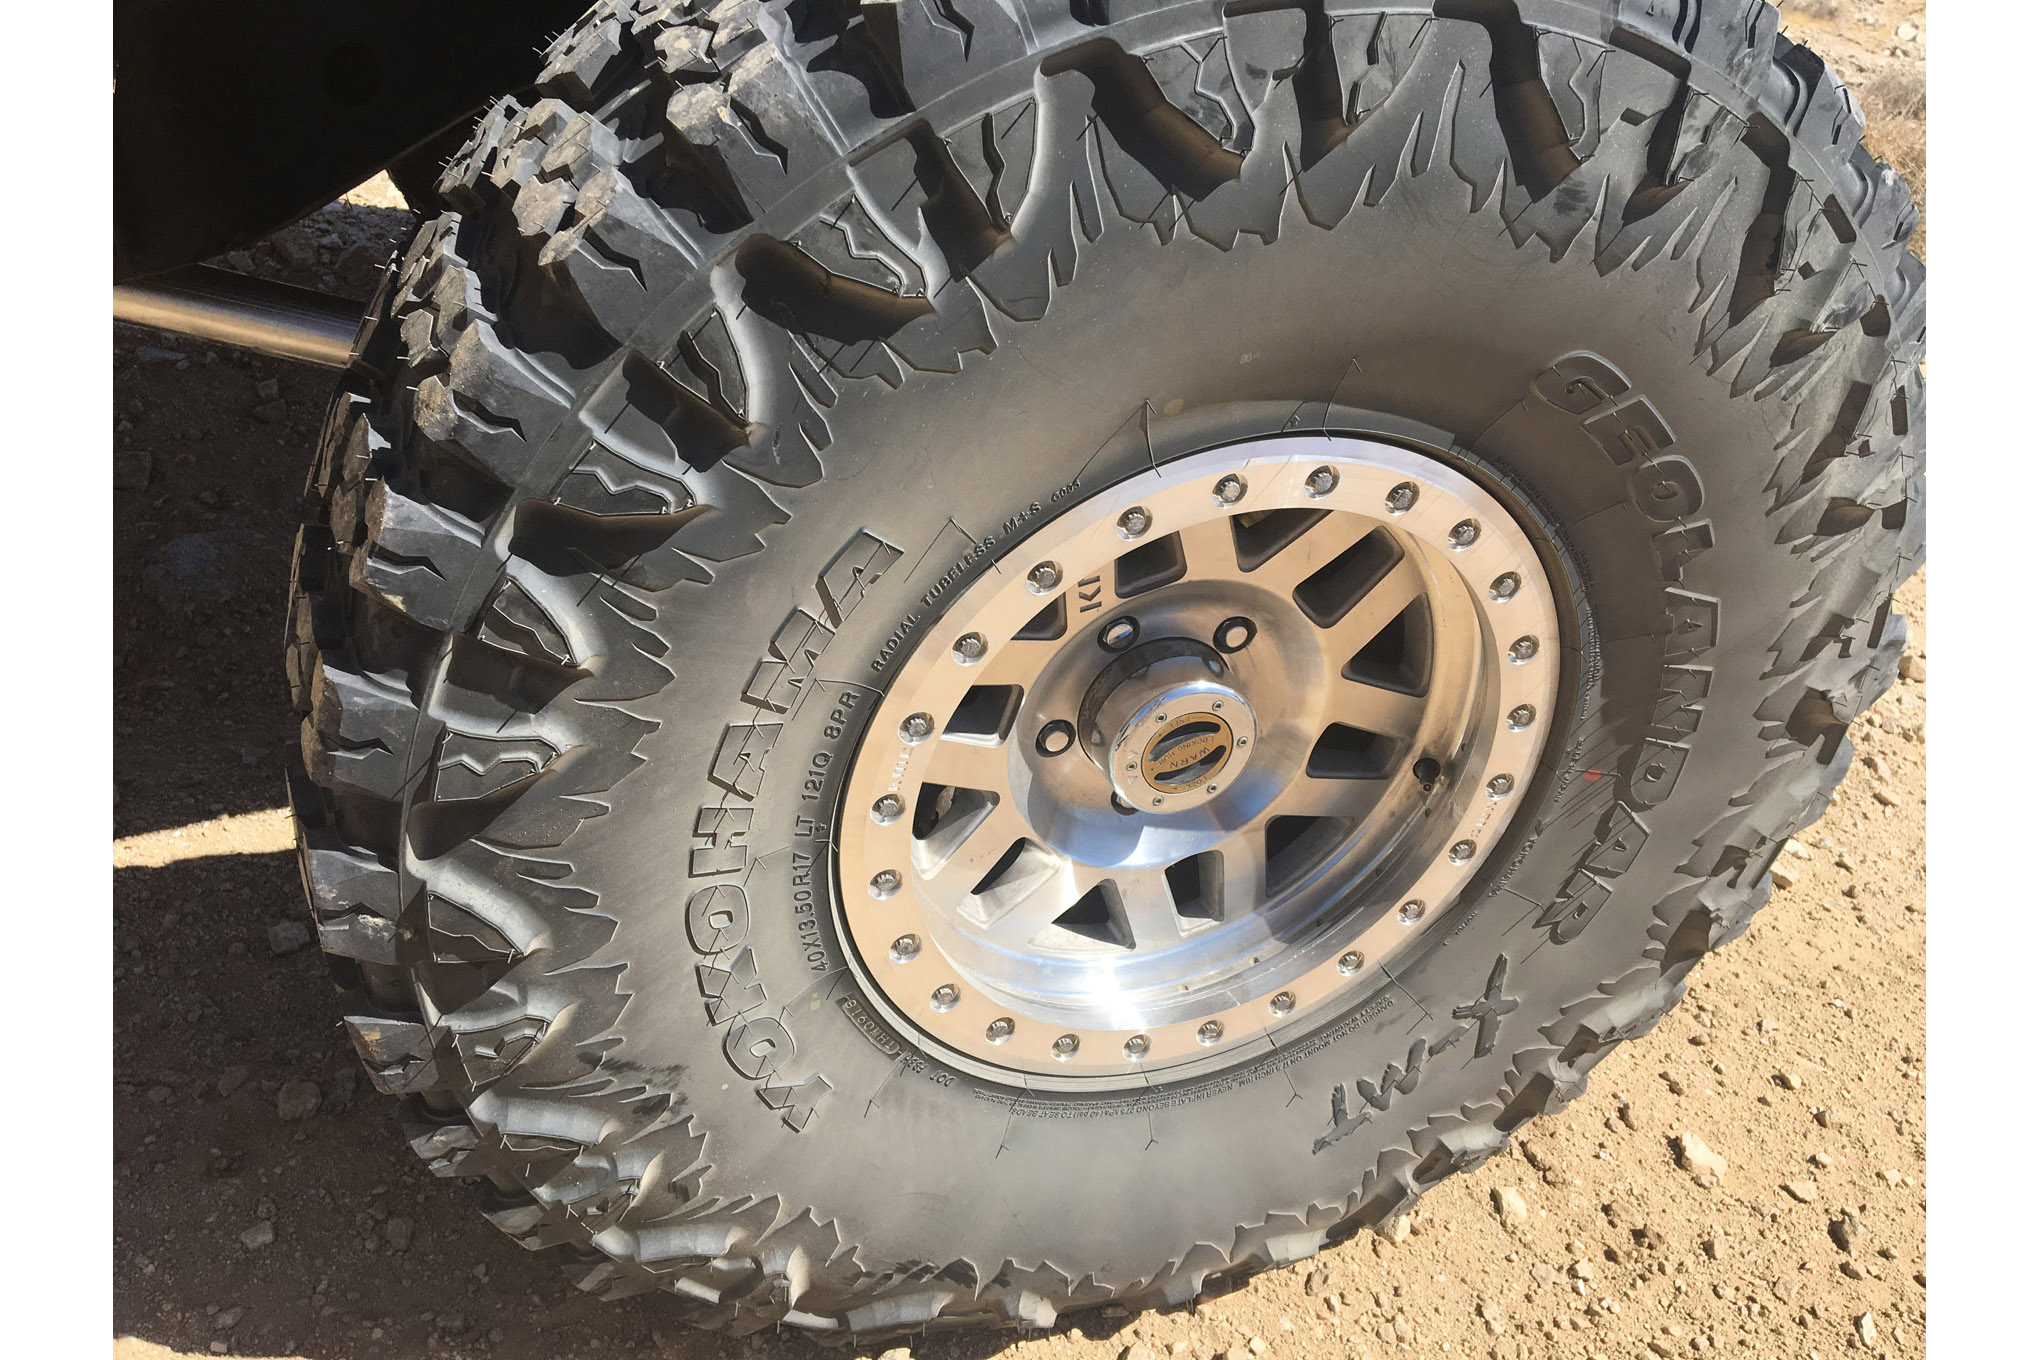 The unique sidewall treatment helps with the gritty look of a true off-road tire. The whole tire is designed with a triple polymer blend of rubber with lots of nano-carbon black for more cut and chip resistance. We'll let you know how much more when we get a set on our own Jeep for testing.